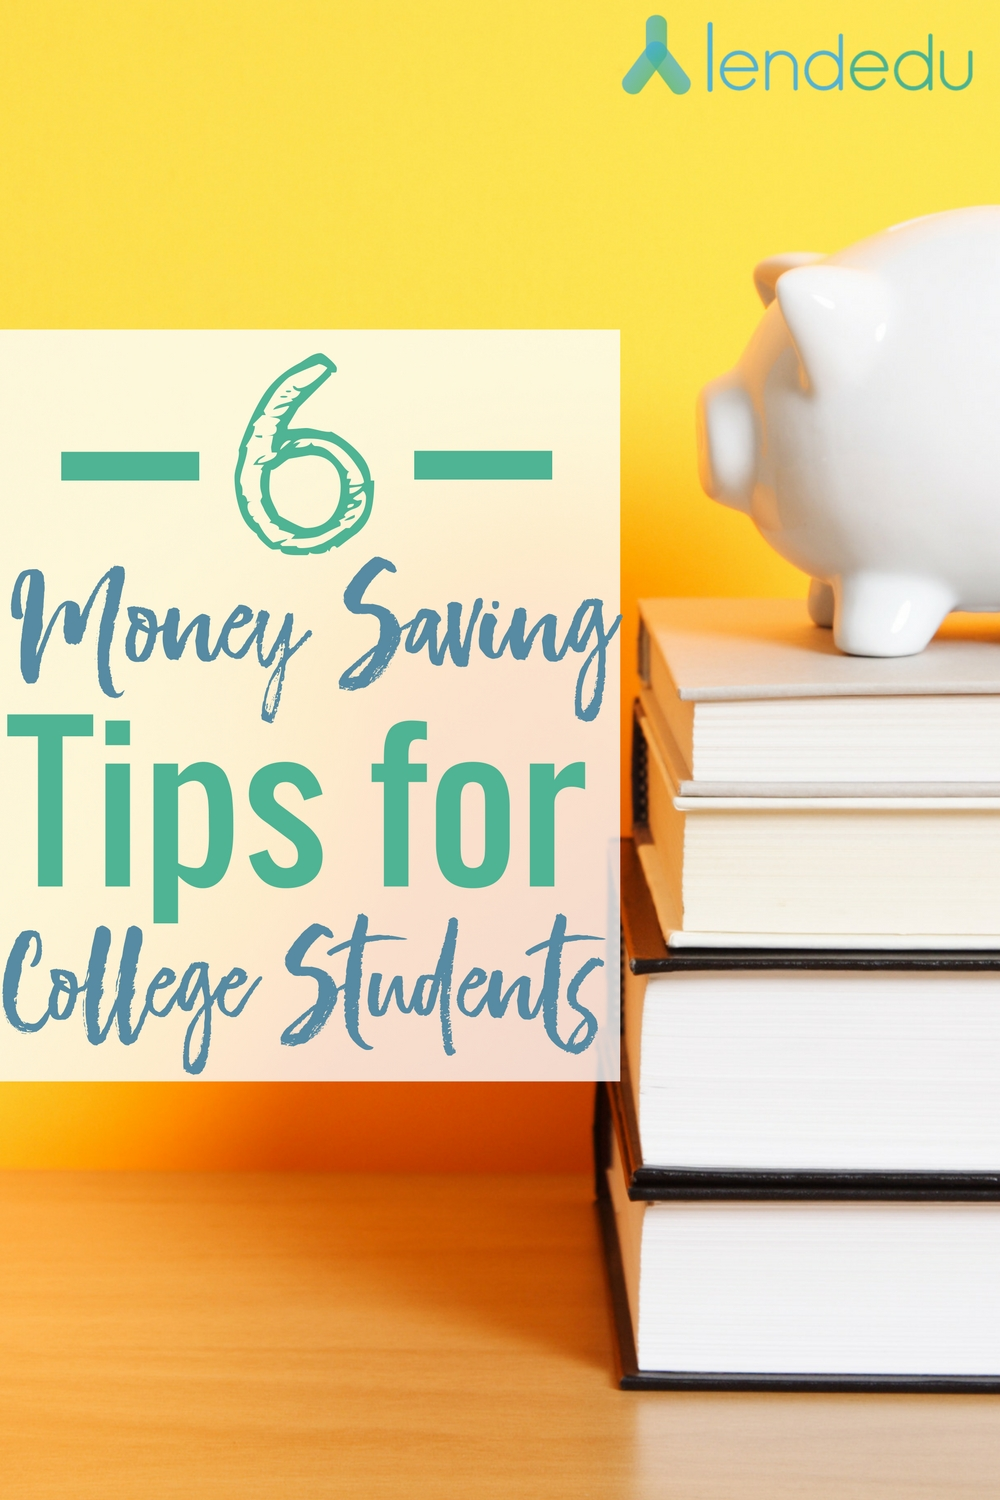 Money Saving Tips for College Students. Where does your money go? It is important to know where you are spending your money. This will allow you to develop better spending habits. Make a budget. Estimate your monthly income and expenses. Live like a college student. The reality is that you're a college student. So live like one—don't spend money you don't have yet.